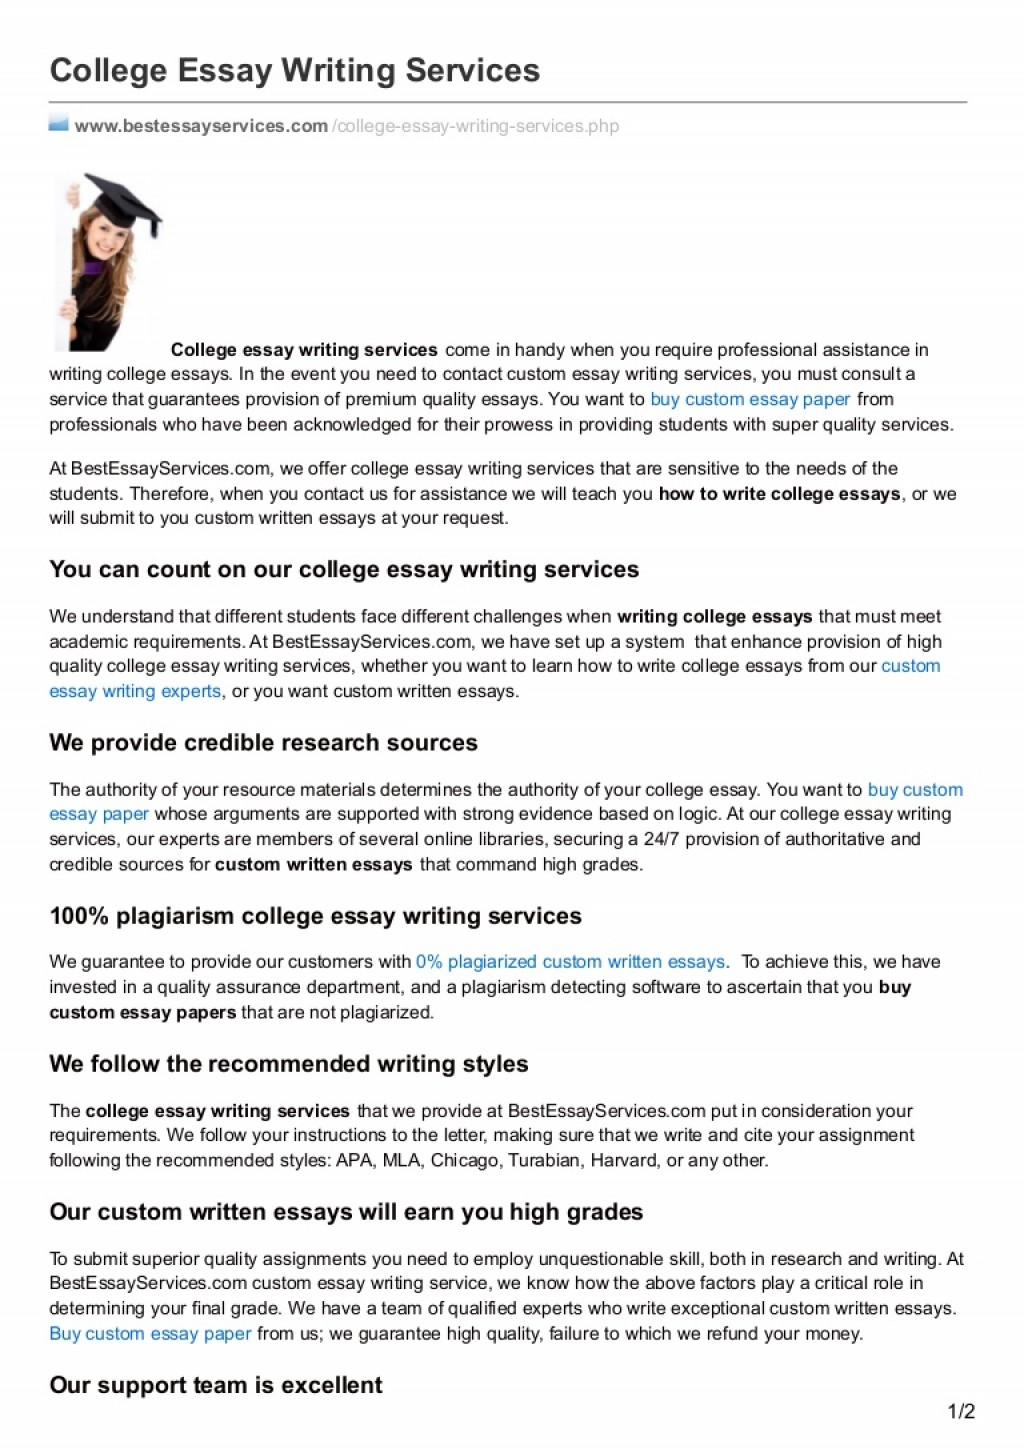 011 Bestessayservices Com College Essay Writing Services I Want To Write Essays For Money Thumbn Best Uni Scholarship Large